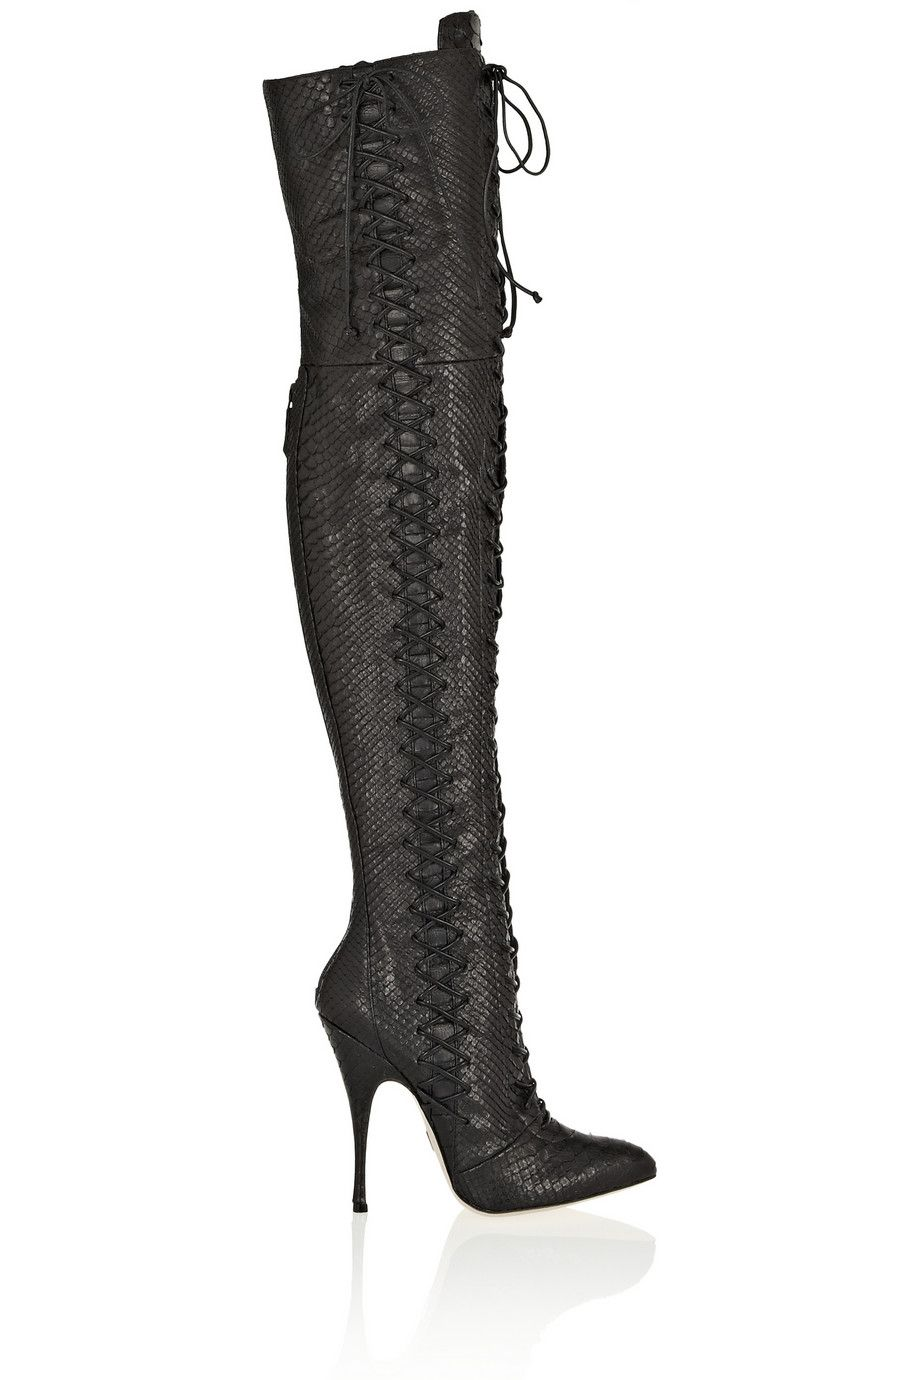 Belle python over-the-knee boots by Brian Atwood